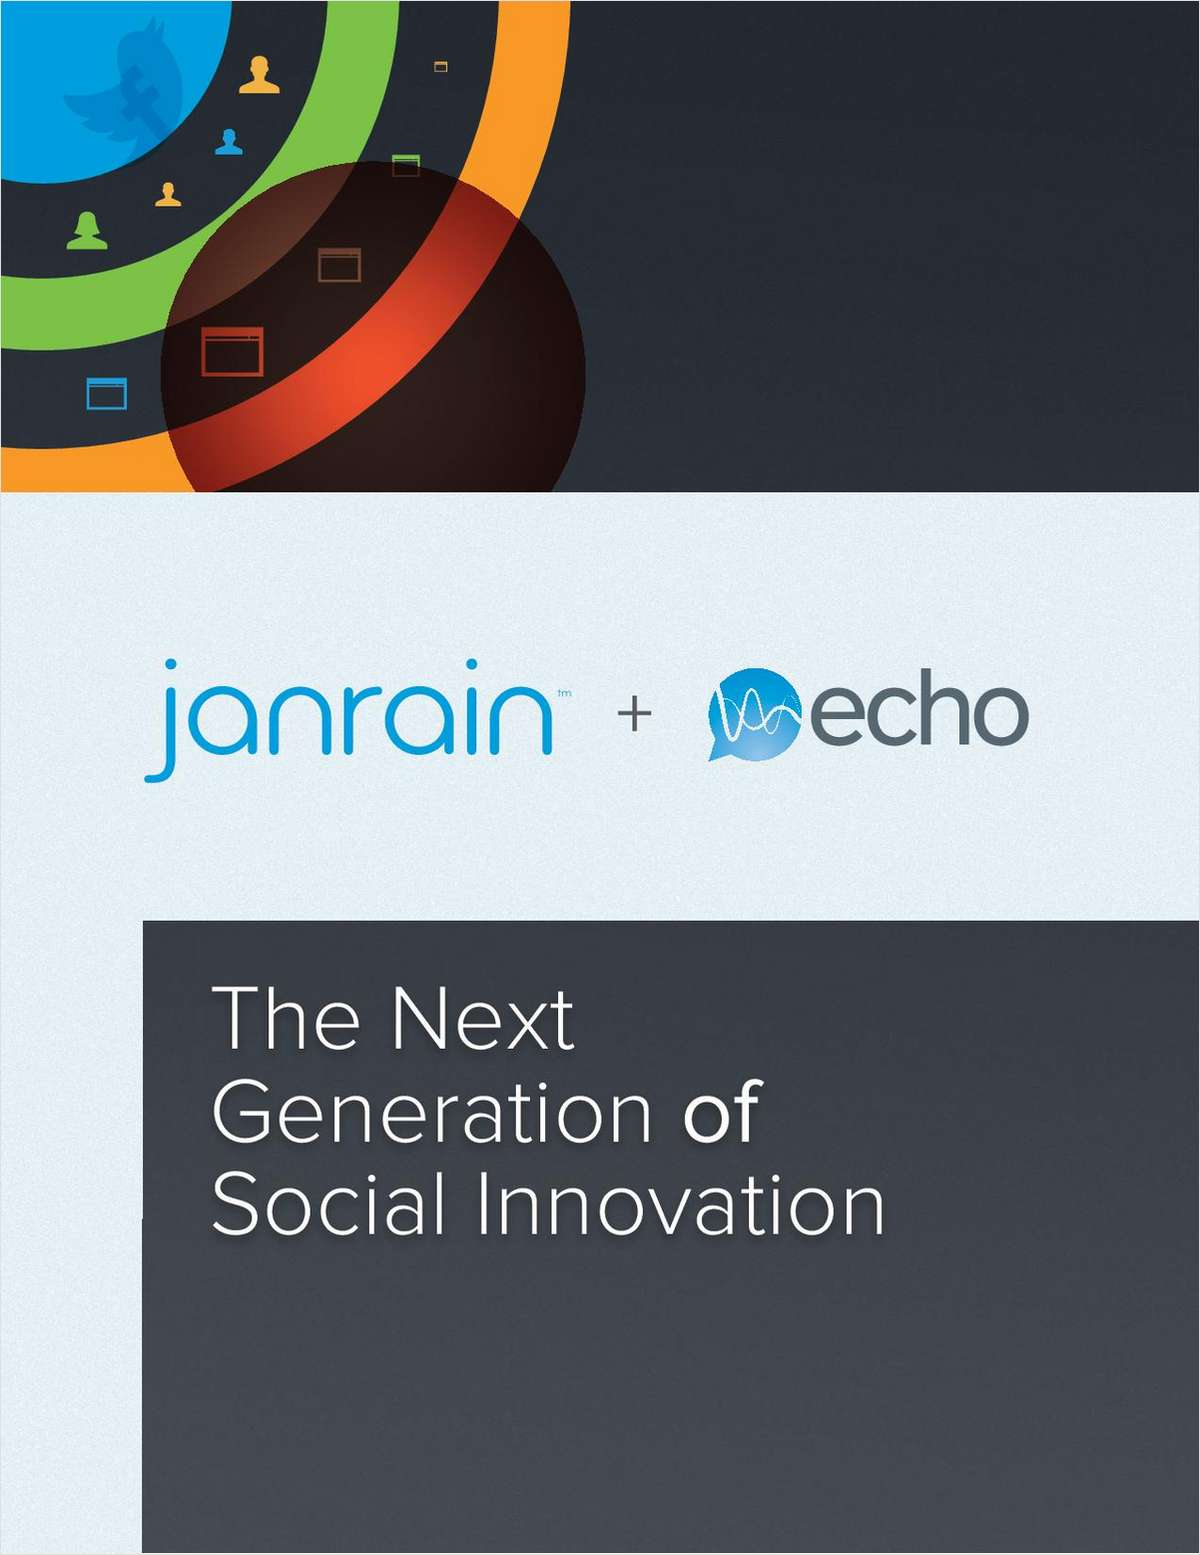 The Next Generation of Social Innovation